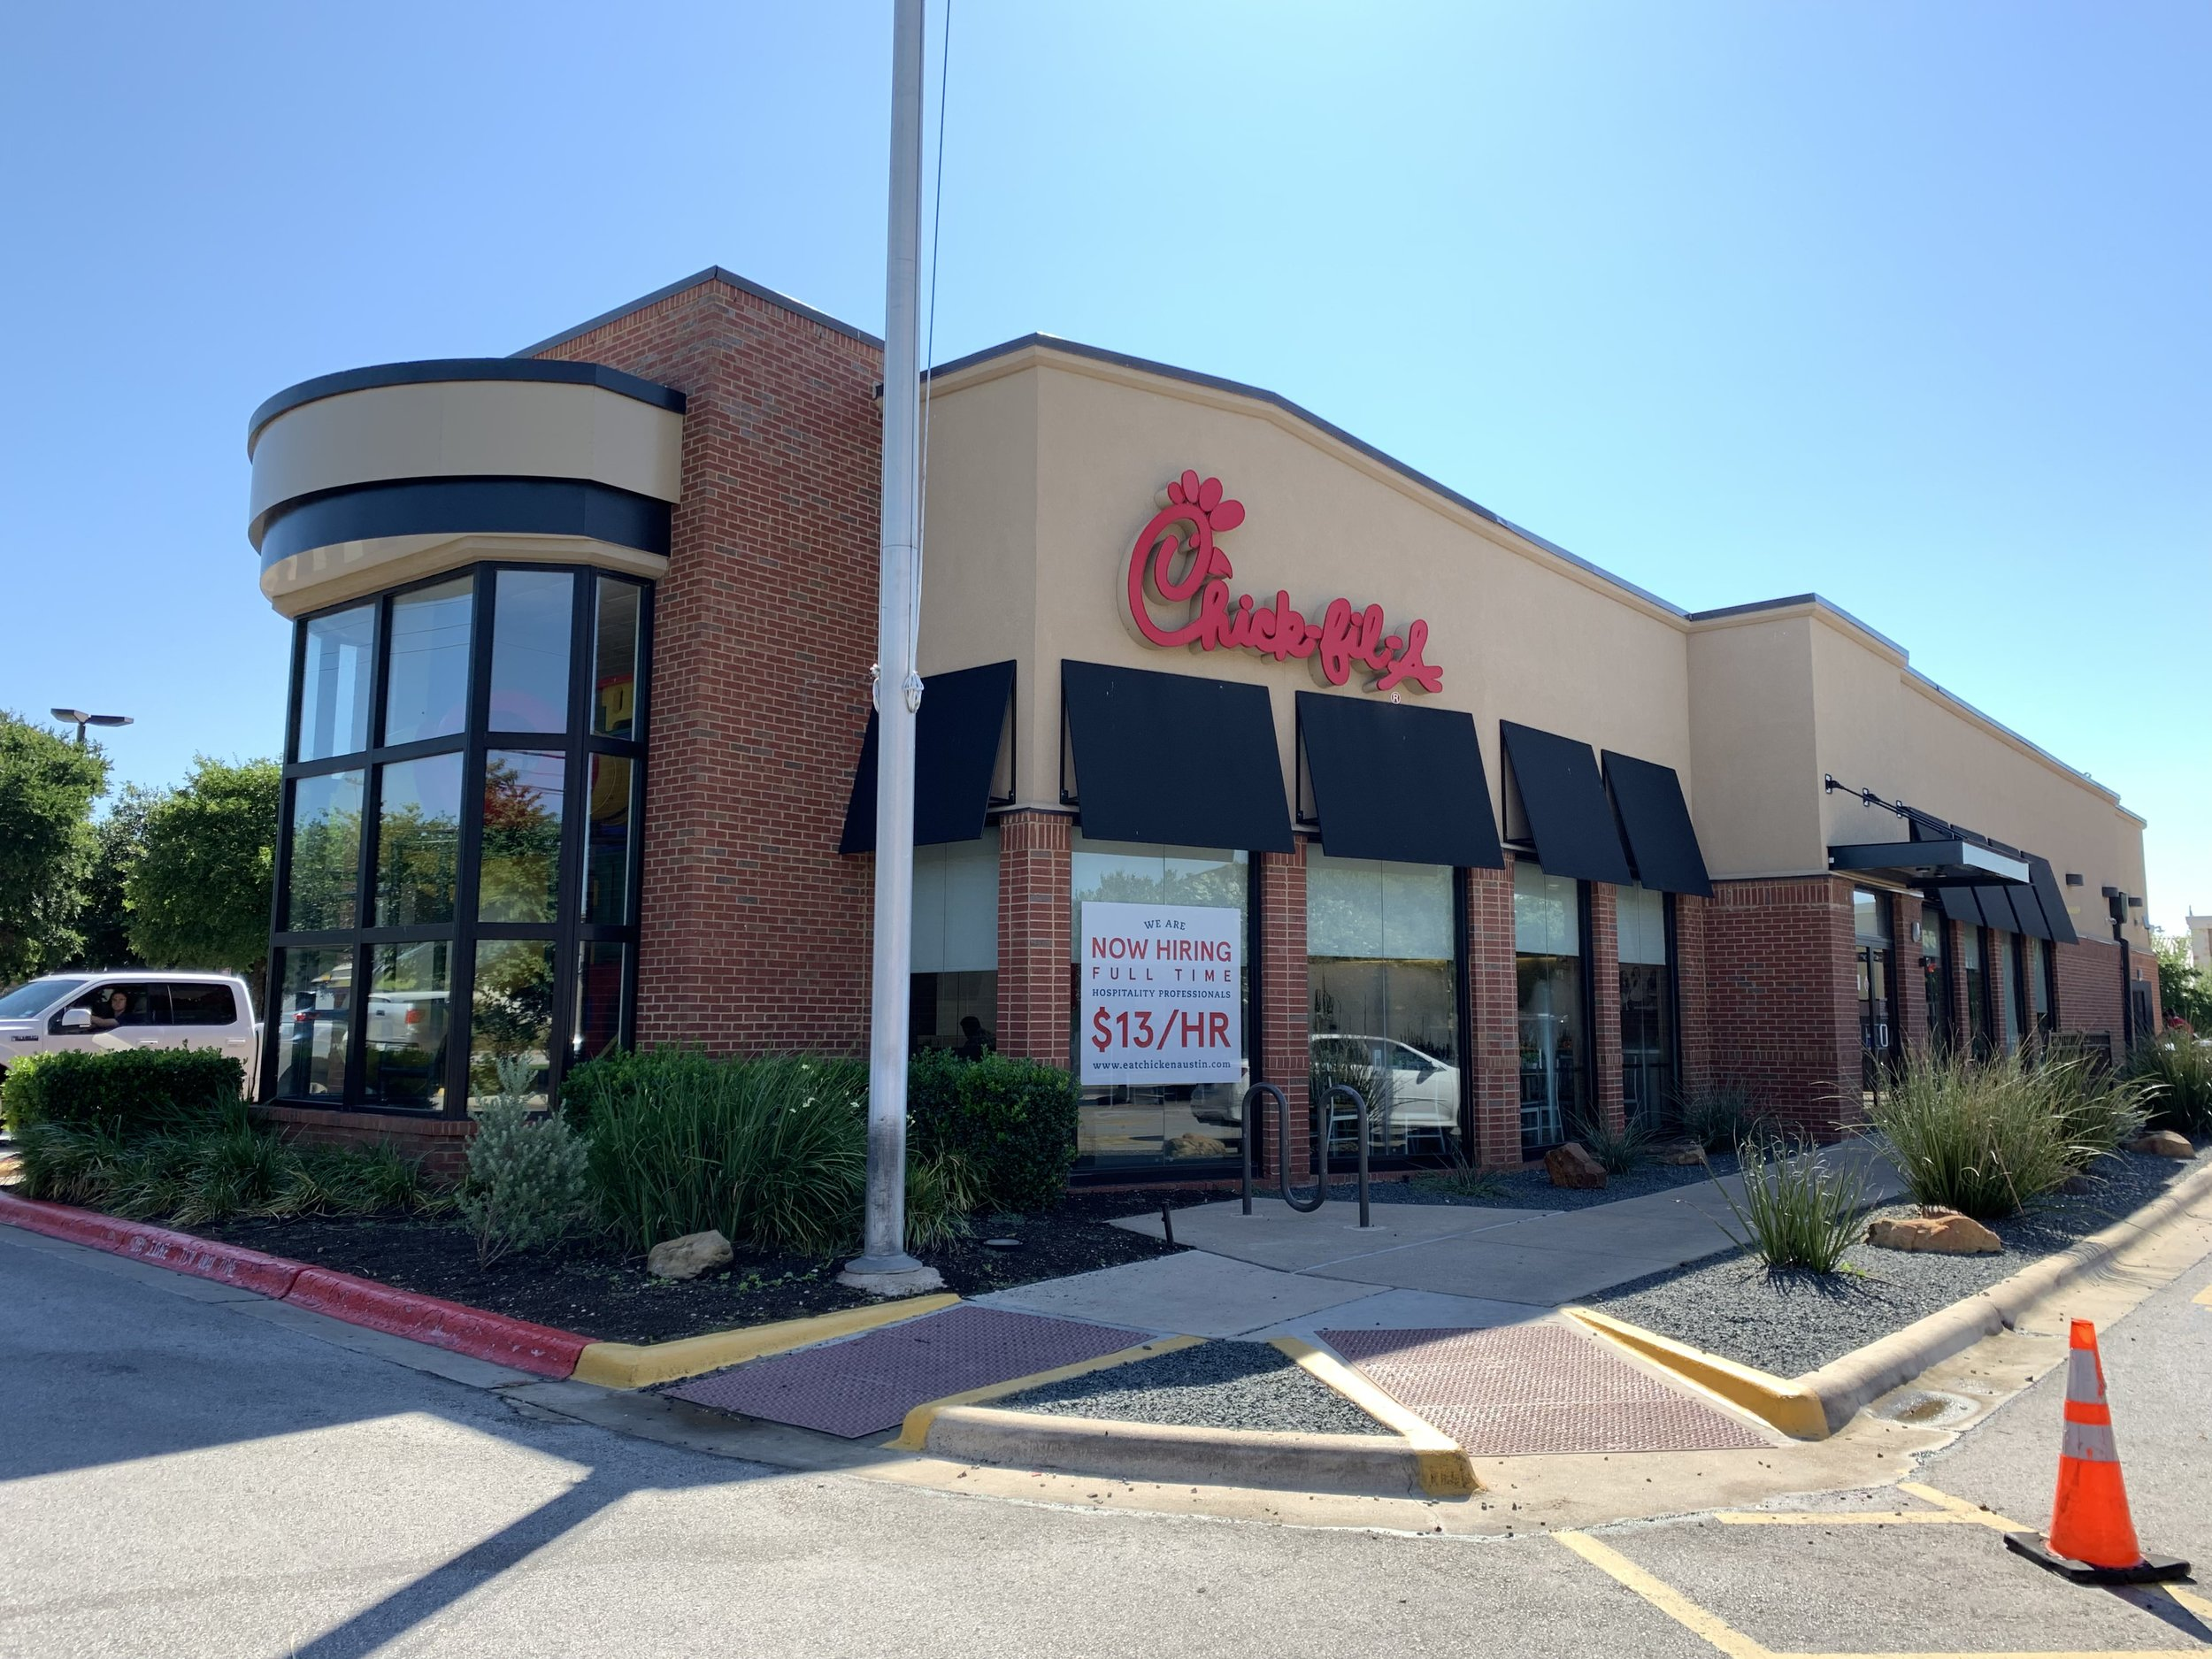 Chick-fil-A South Mopac at US Hwy 290 West - 5033-D US Hwy 290 West,Austin, TX 78735(512) 358-9125